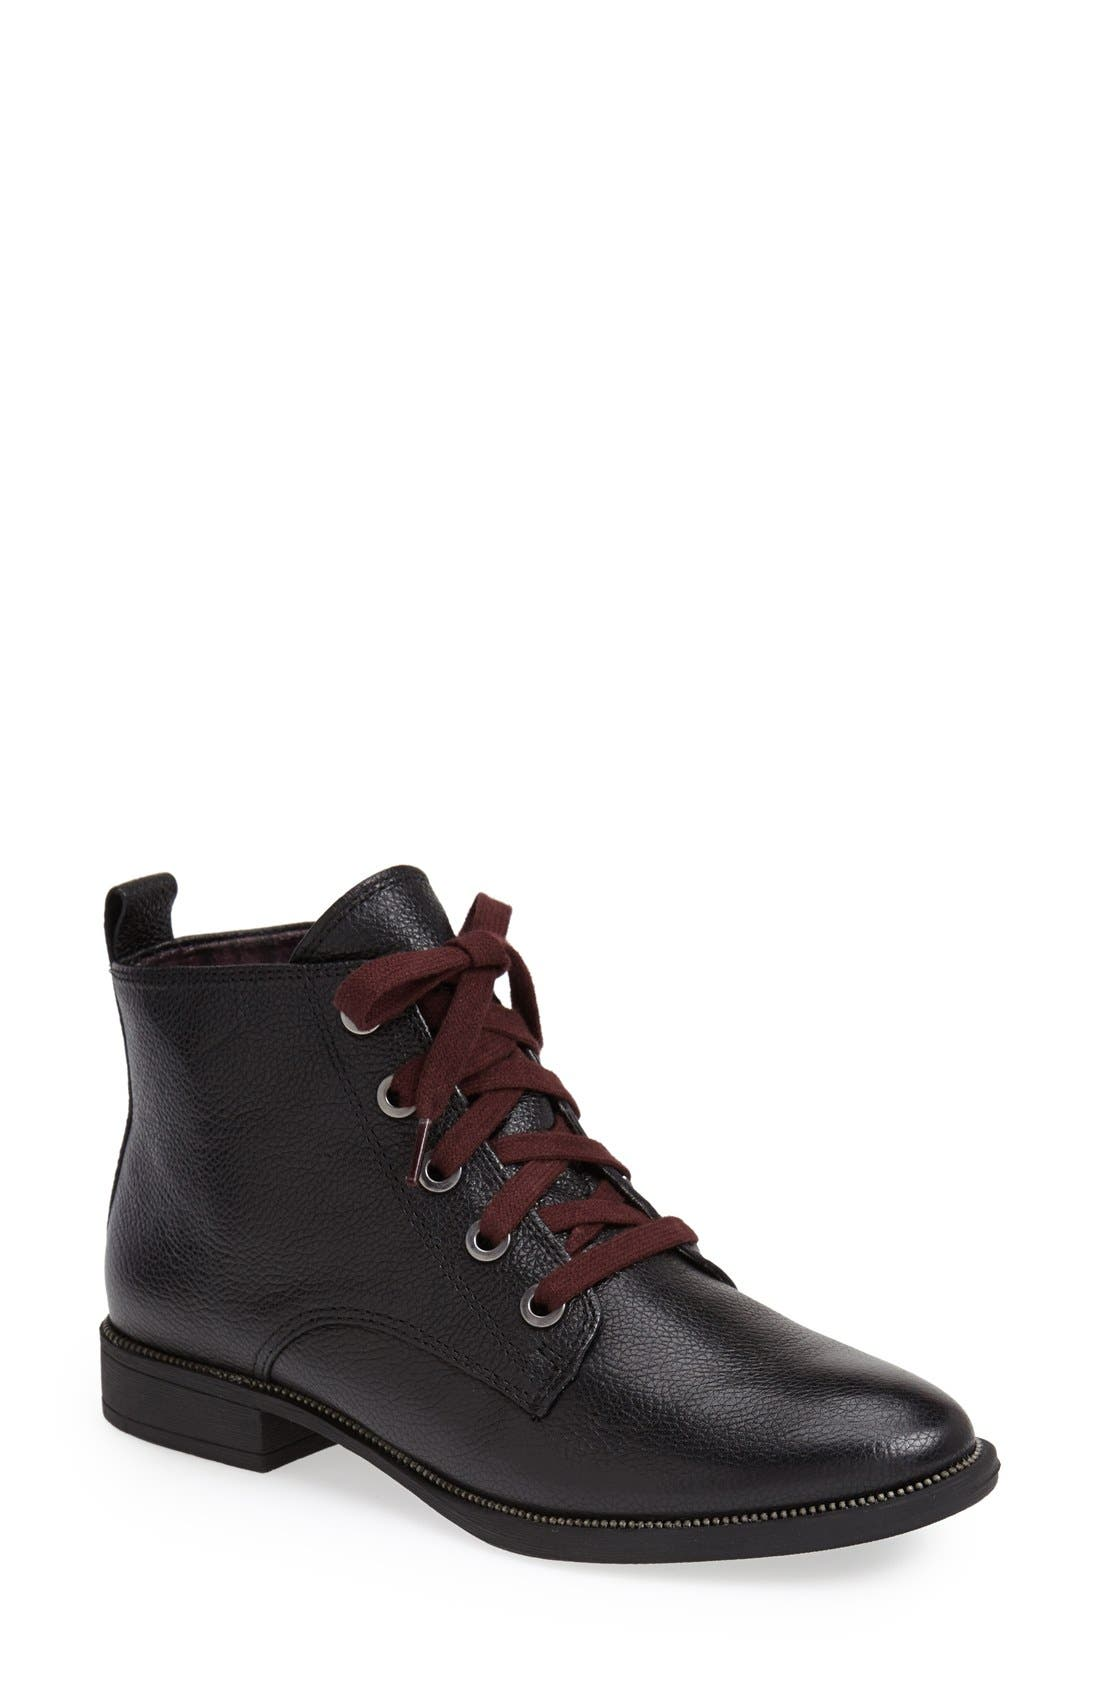 Main Image - Circus by Sam Edelman 'Charlie' Boot (Women)